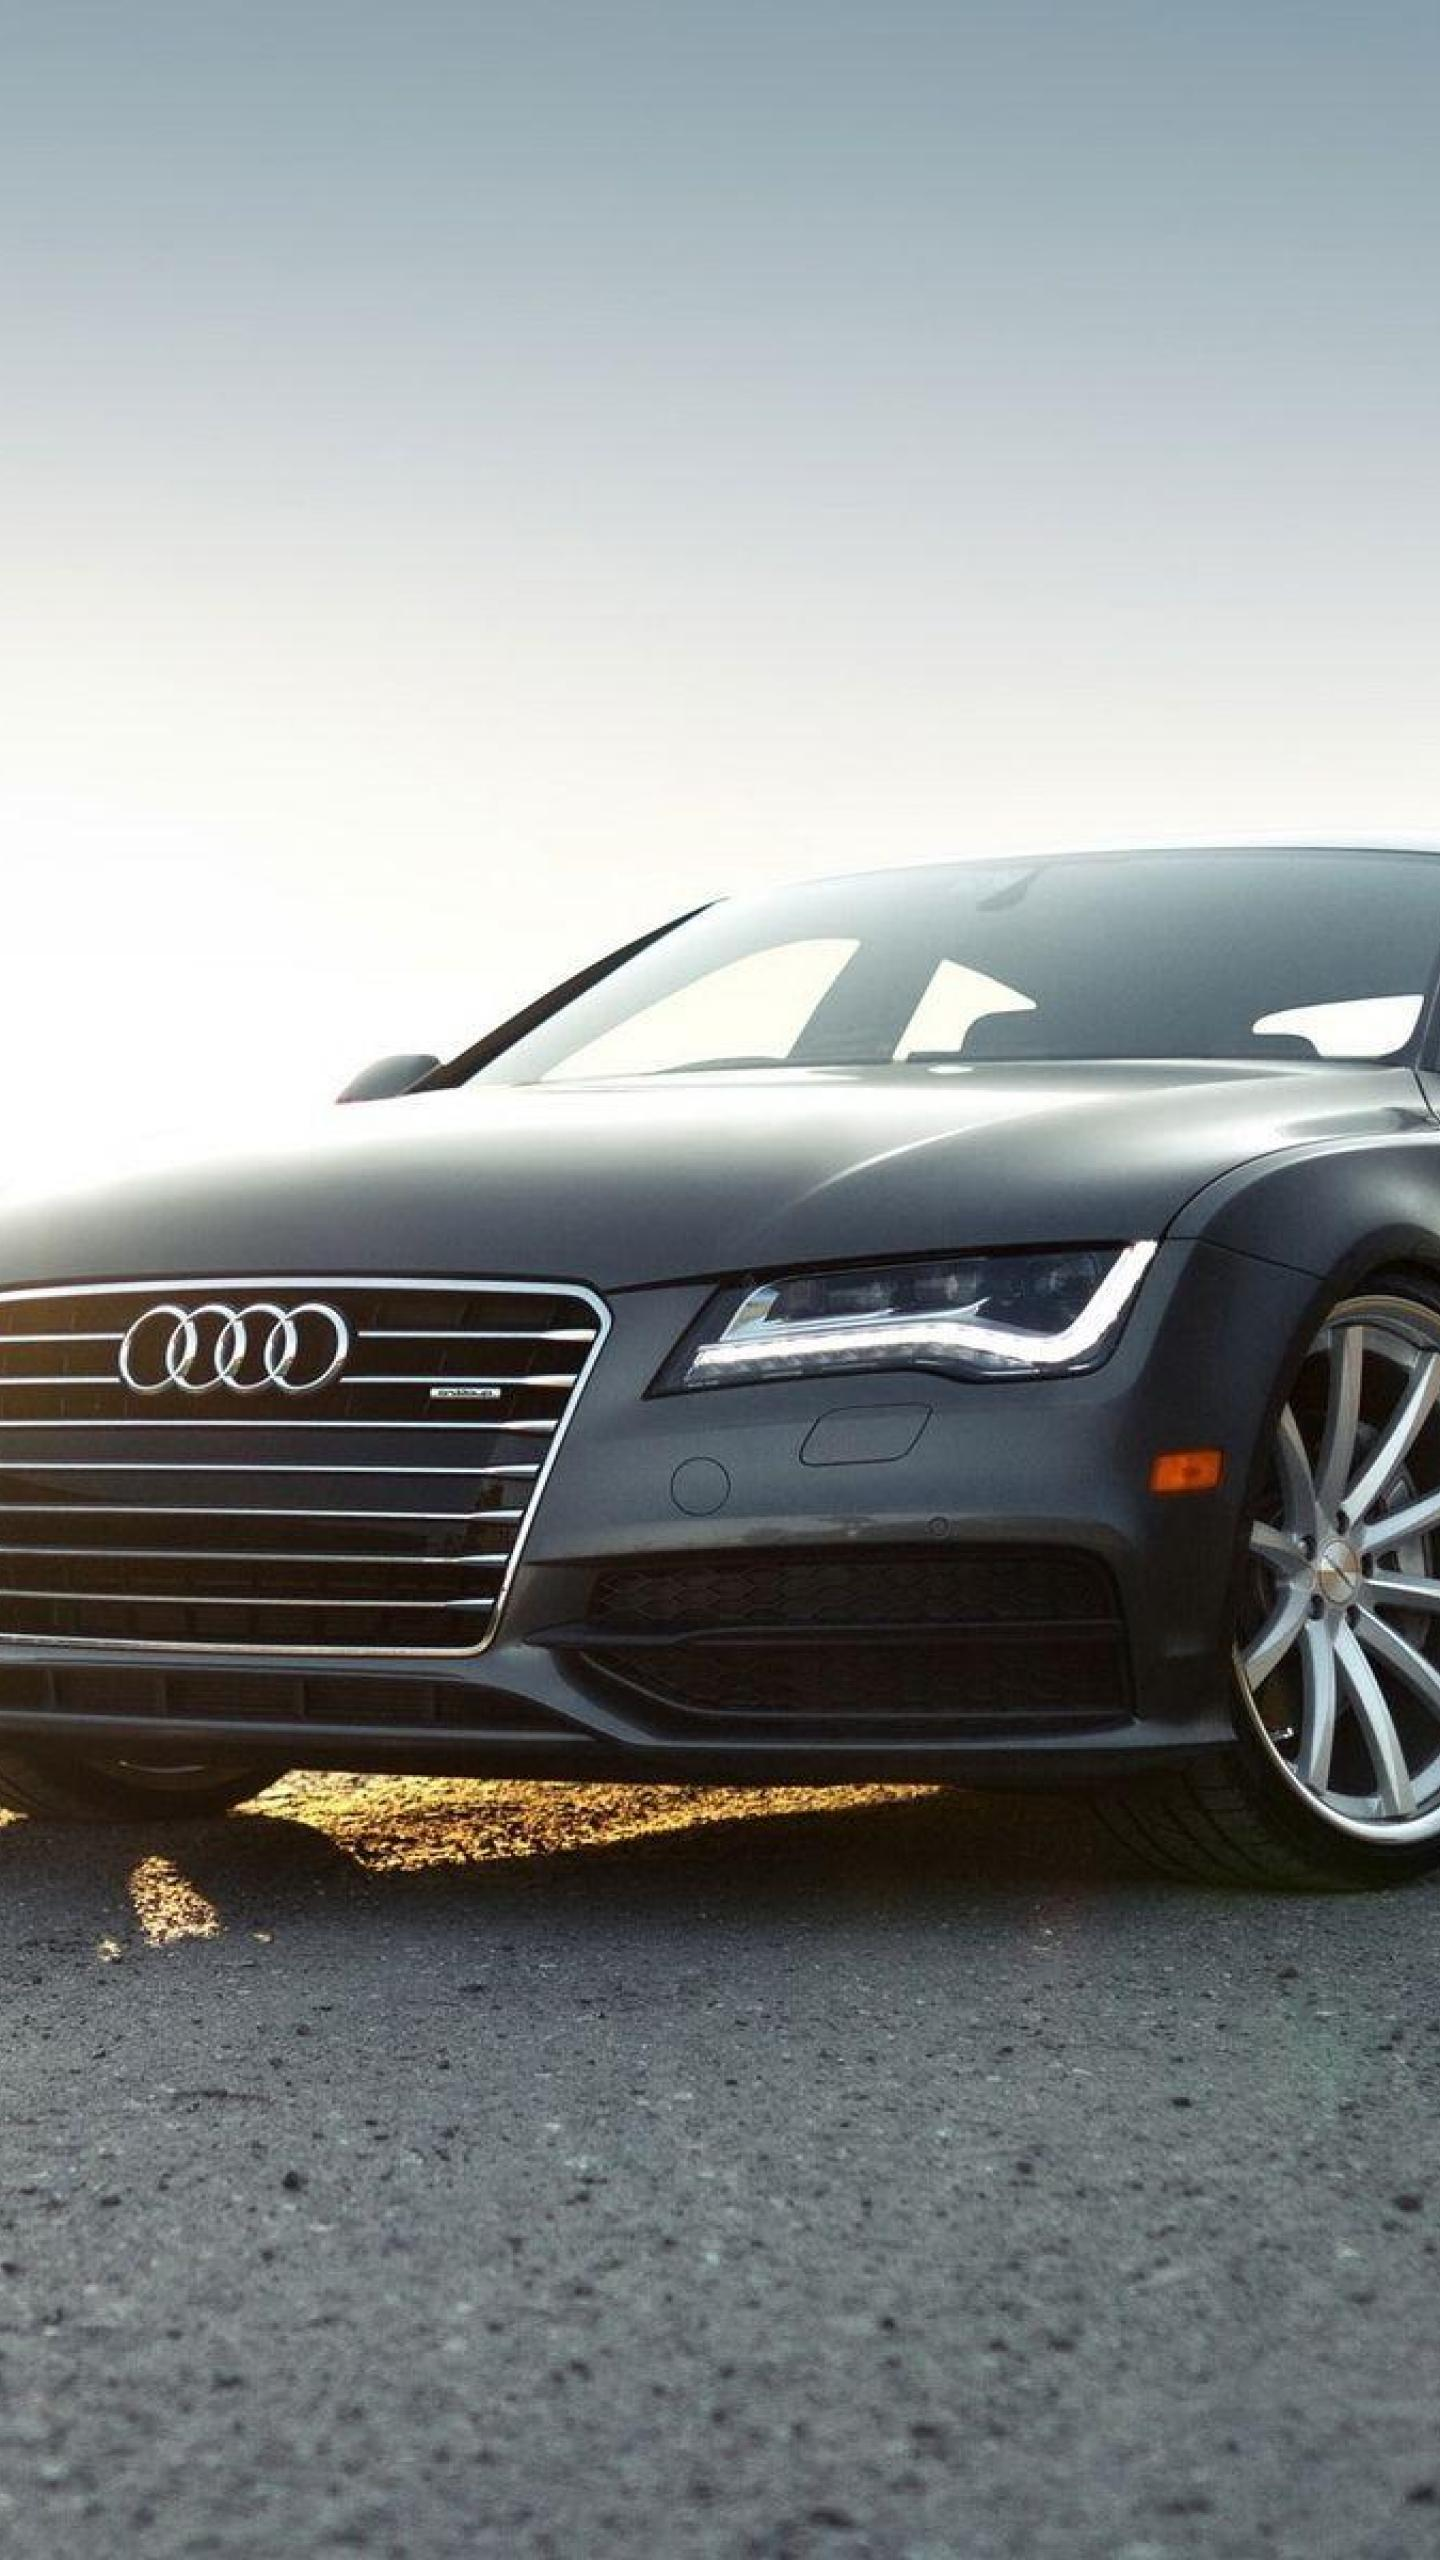 Audi Wallpapers For Mobile - Audi Car Wallpaper For Mobile , HD Wallpaper & Backgrounds